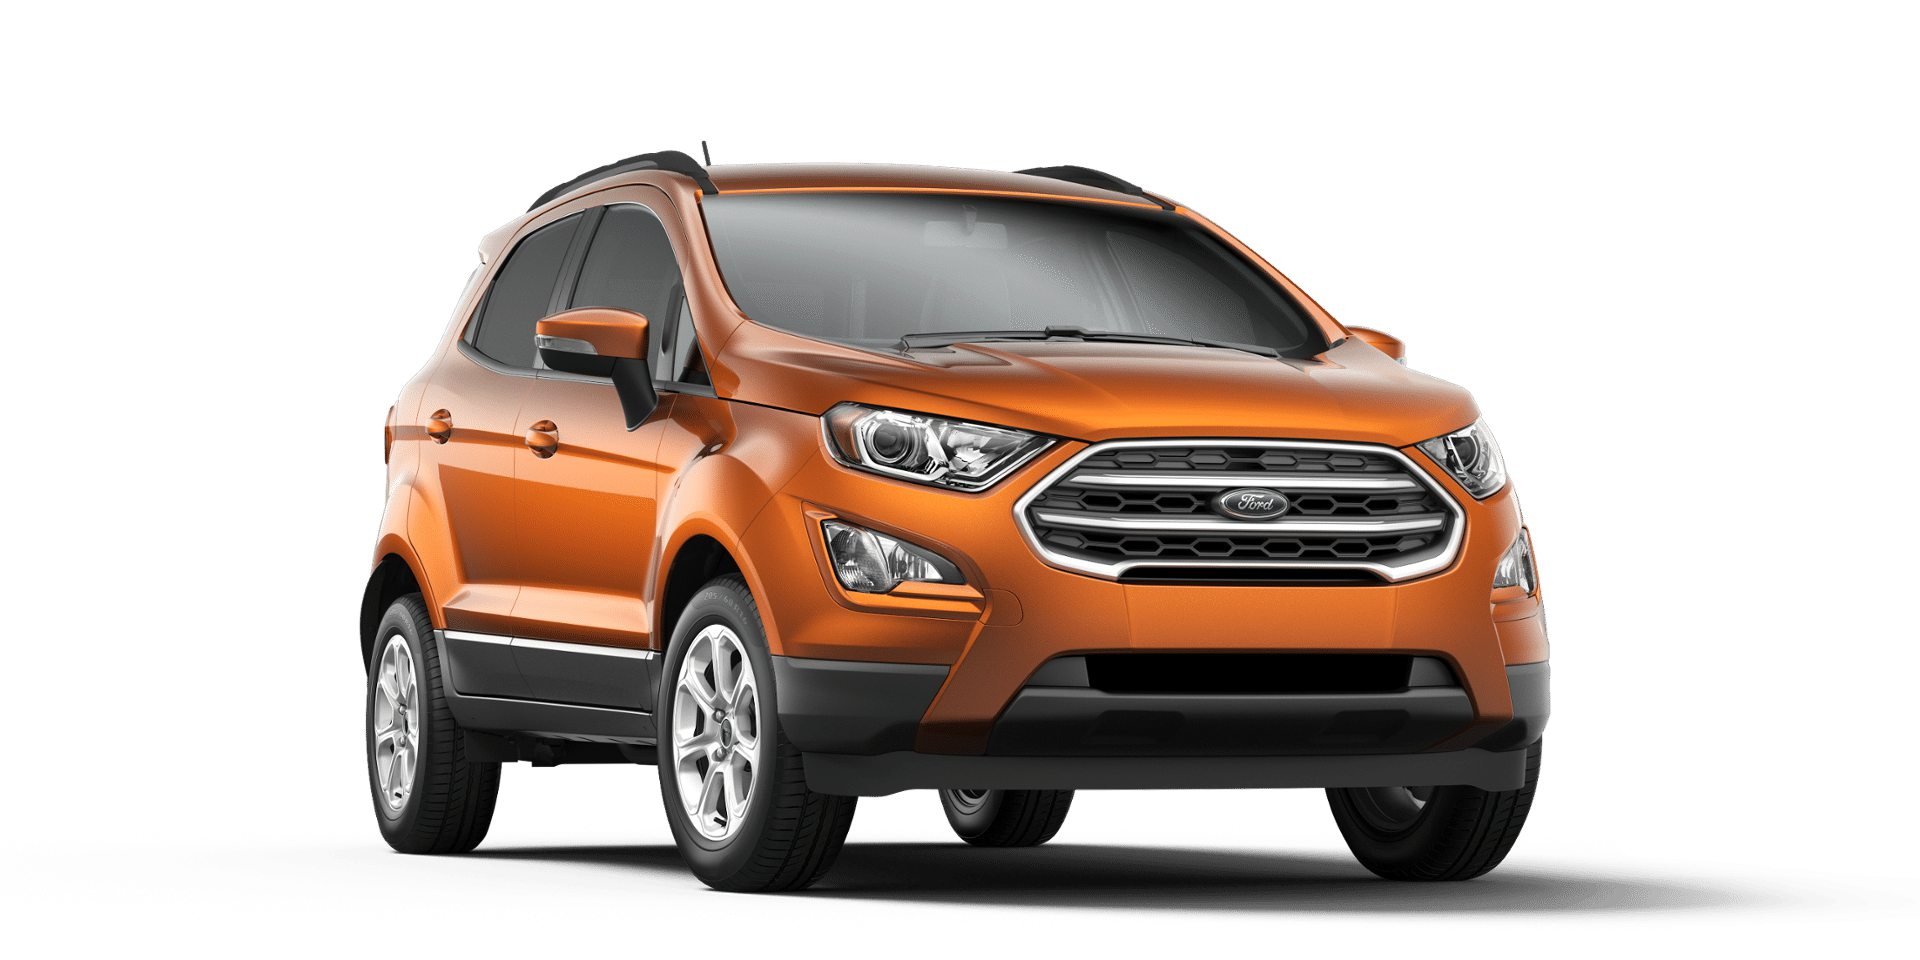 2018 ford ecosport color options. Black Bedroom Furniture Sets. Home Design Ideas